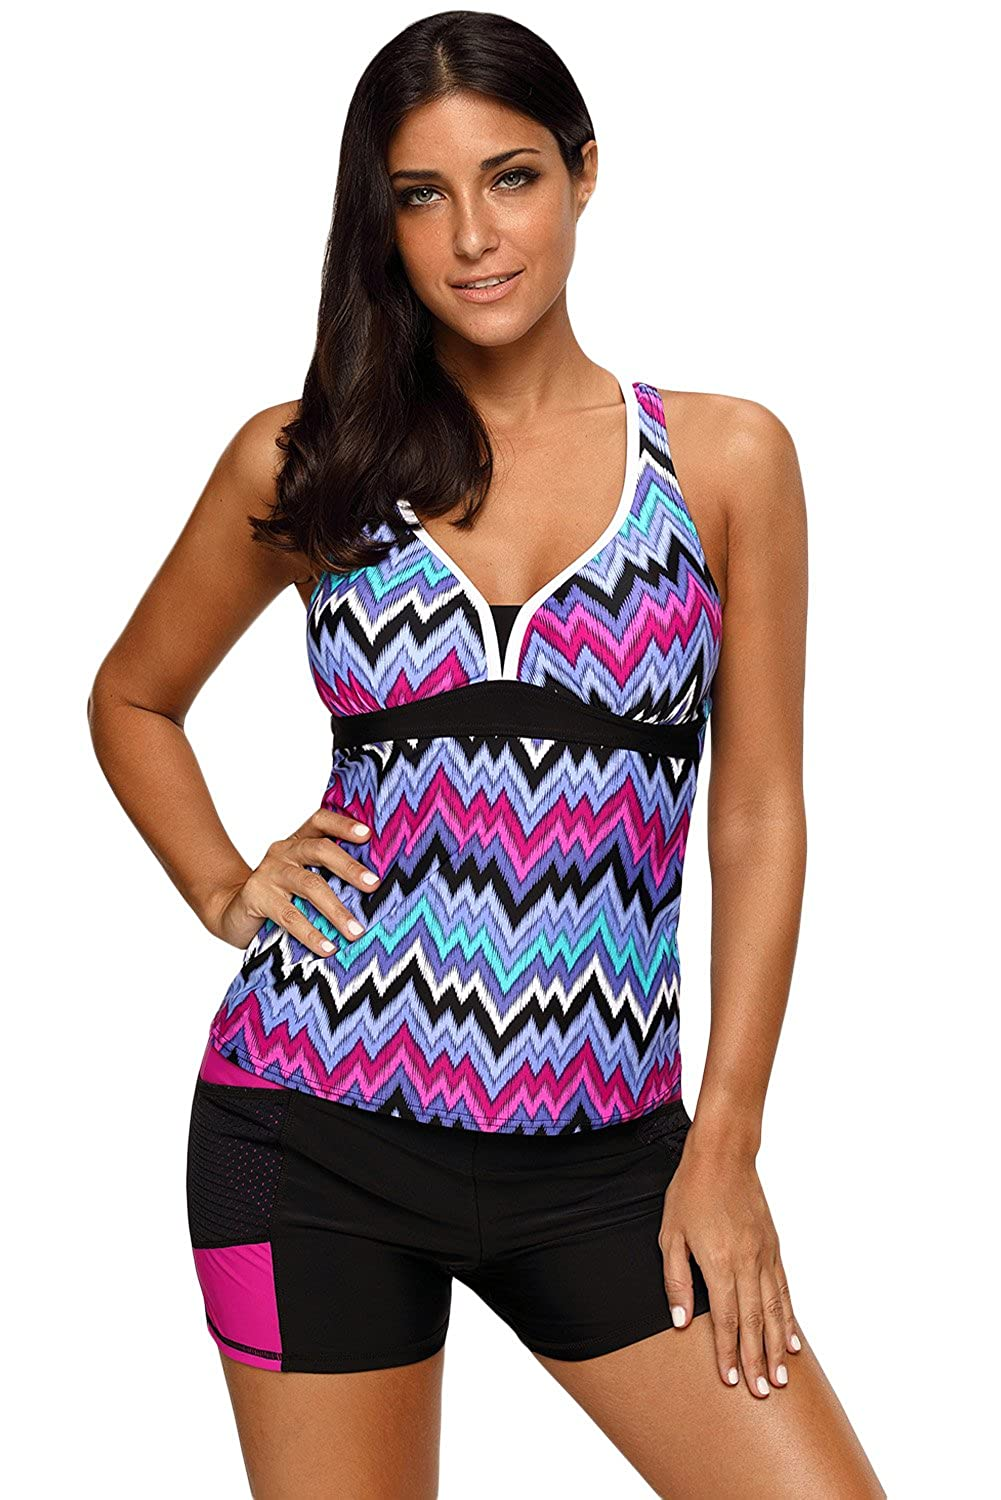 b05cd09965d2a Tankini Swimsuit for women Plus size with boyshorts, The multicolor design  is to make you the most attention-getting person on the beach